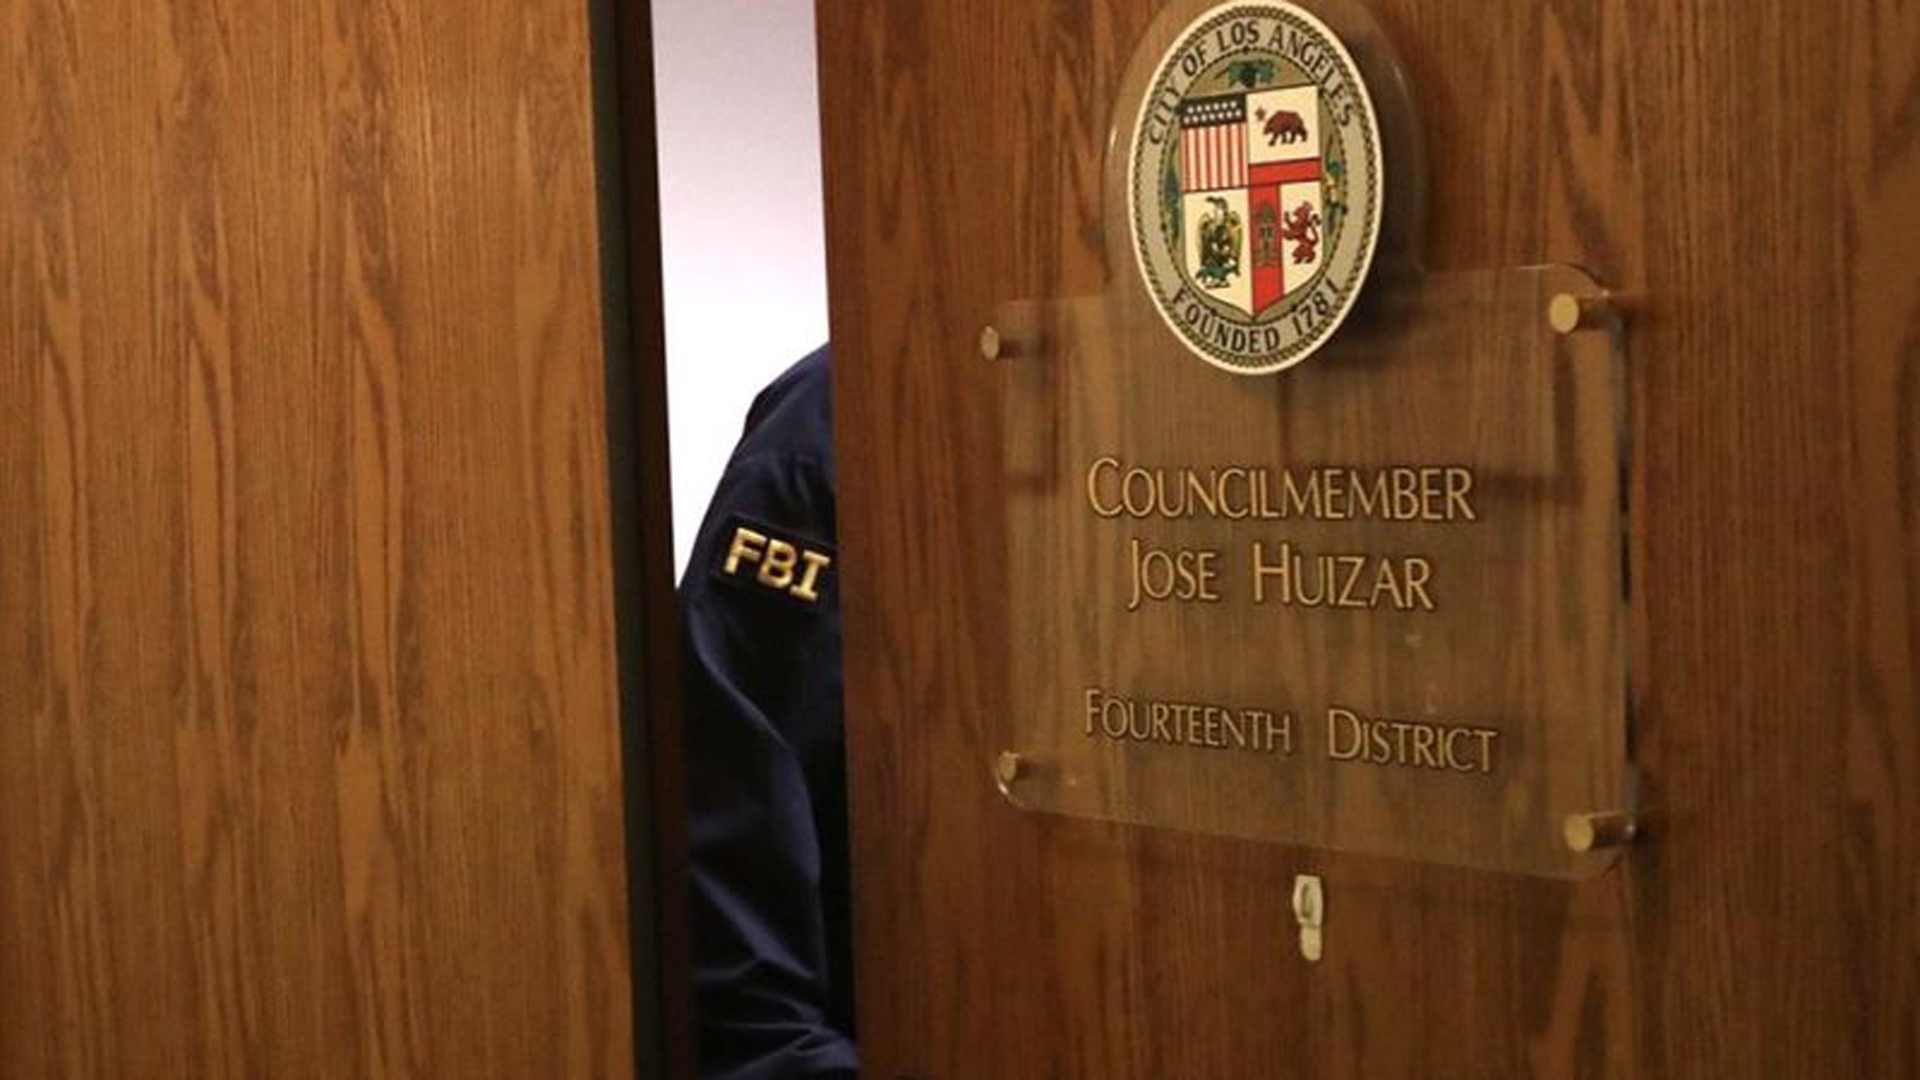 Two months after the FBI raid on the office and home of Los Angeles City Councilman Jose Huizar, new details have emerged about the probe. (Credit: Genaro Molina / Los Angeles Times)